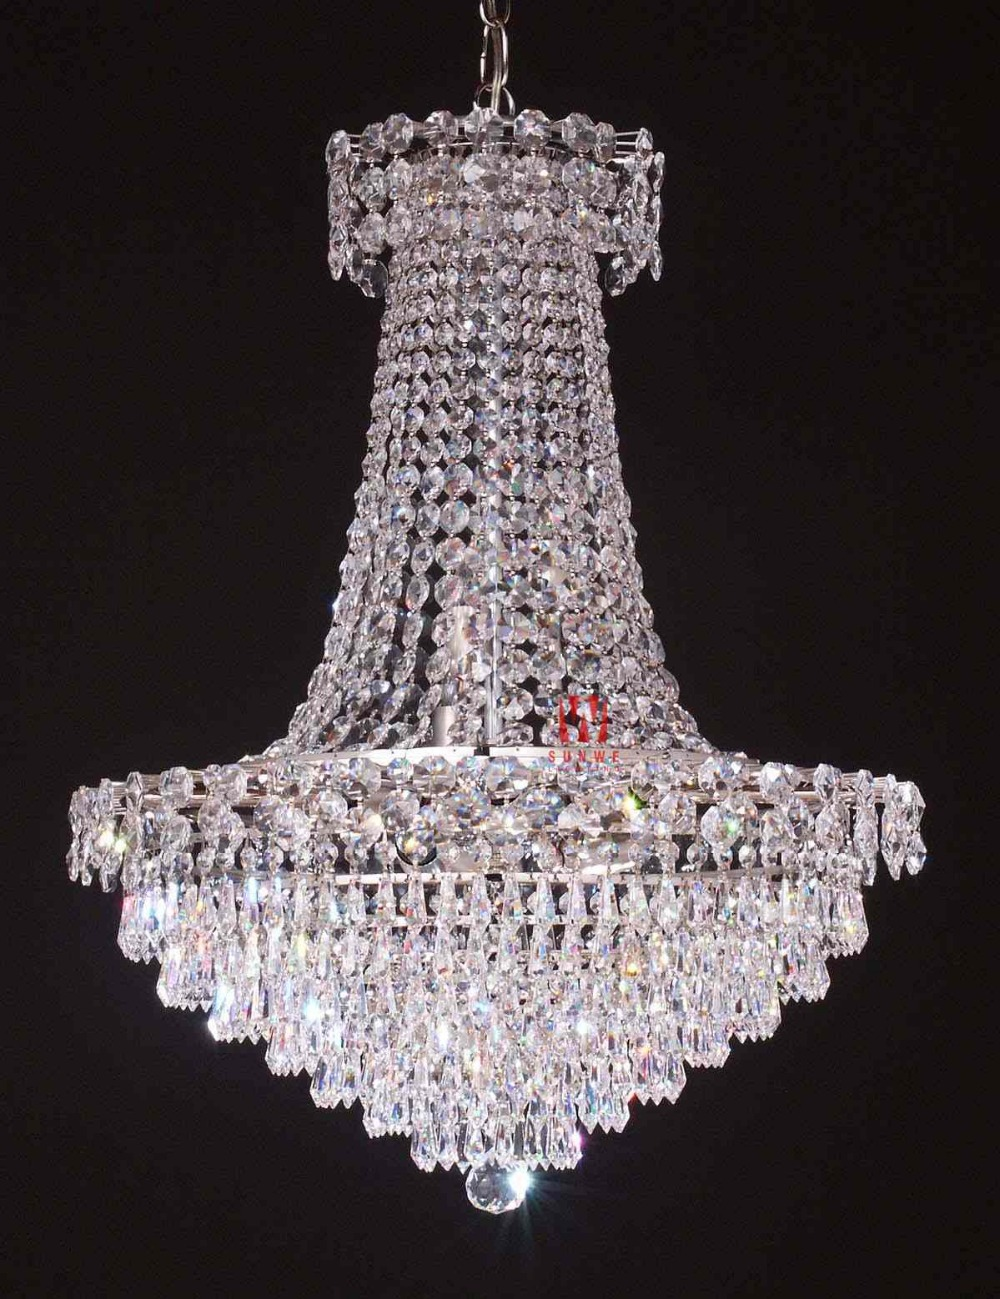 popular small bedroom chandeliers from china best selling